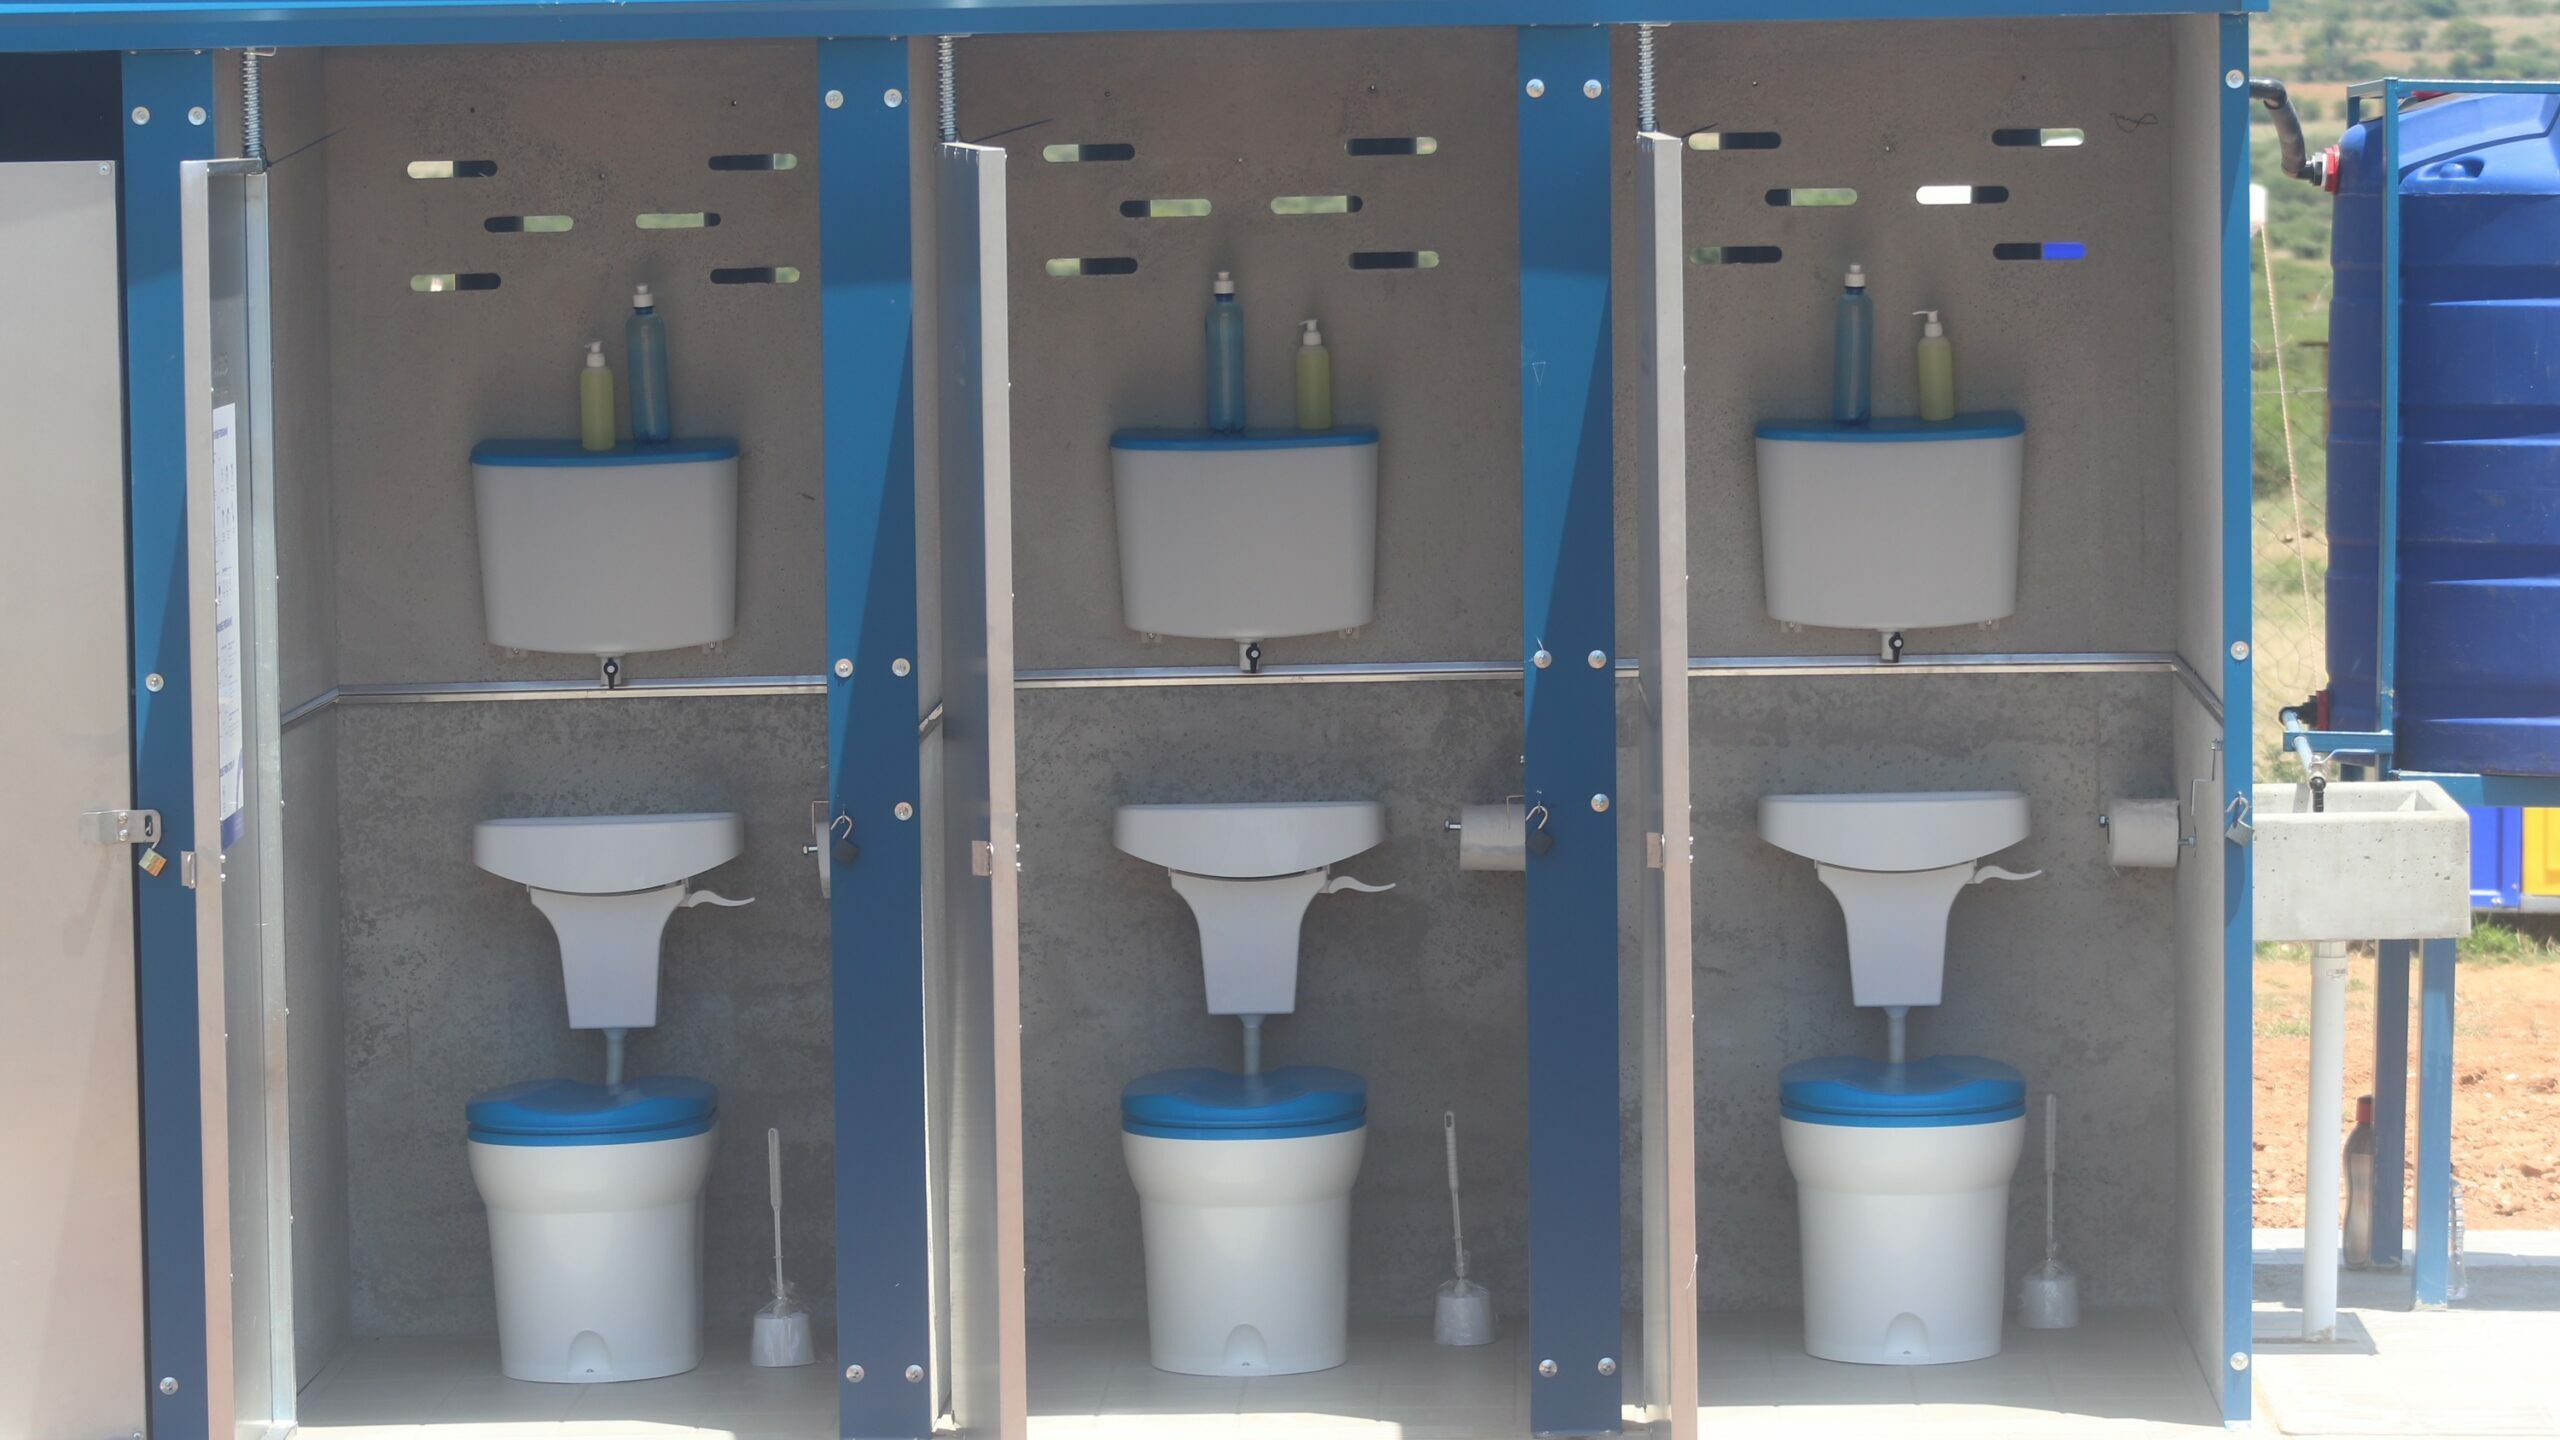 Amalooloo Waterless Sanitation System Solution for Pit Latrines